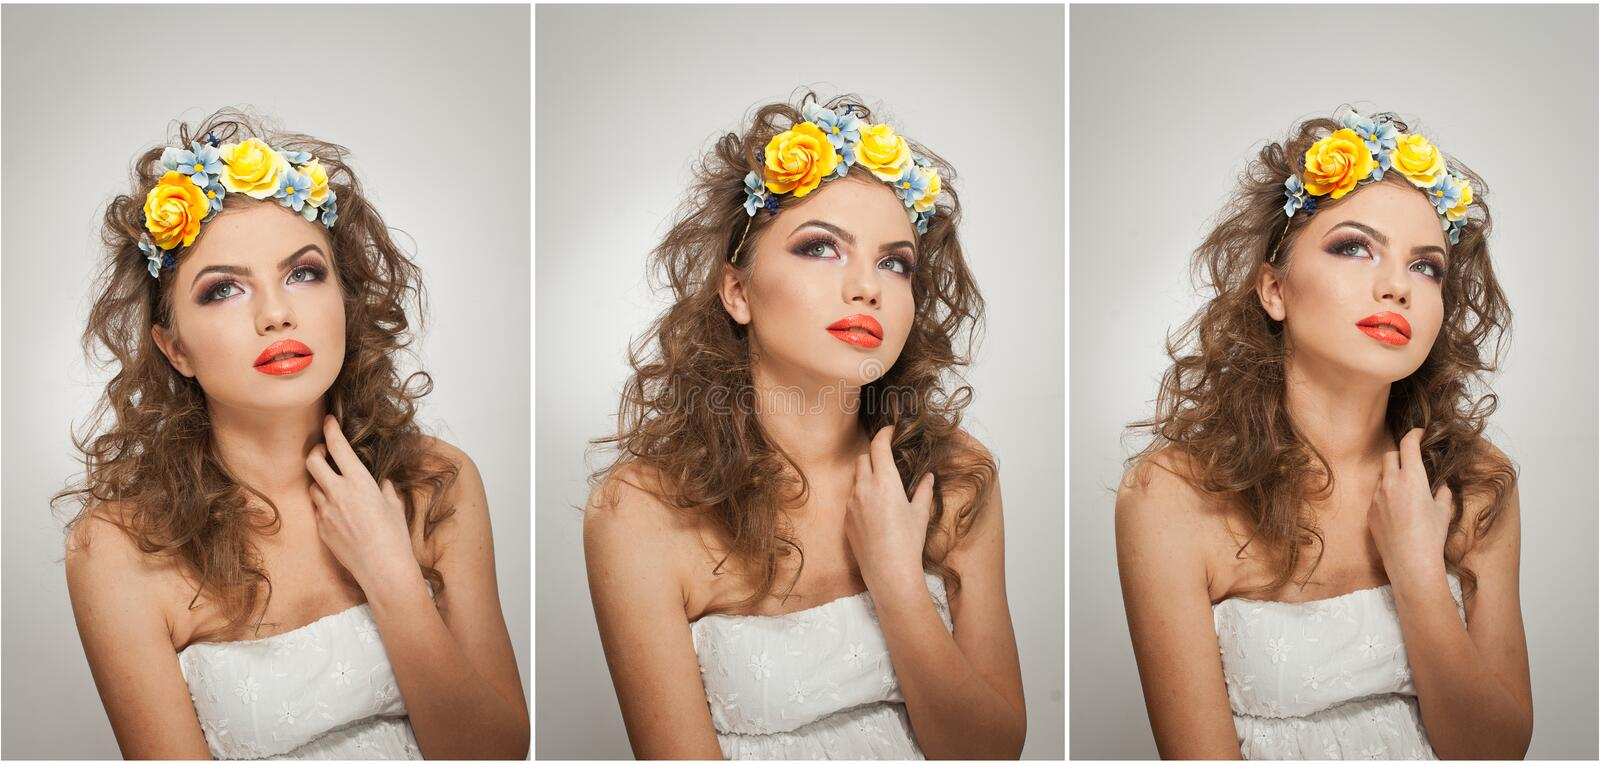 Portrait of beautiful girl in studio with yellow roses in her hair and naked shoulders. young woman with professional makeup stock photos